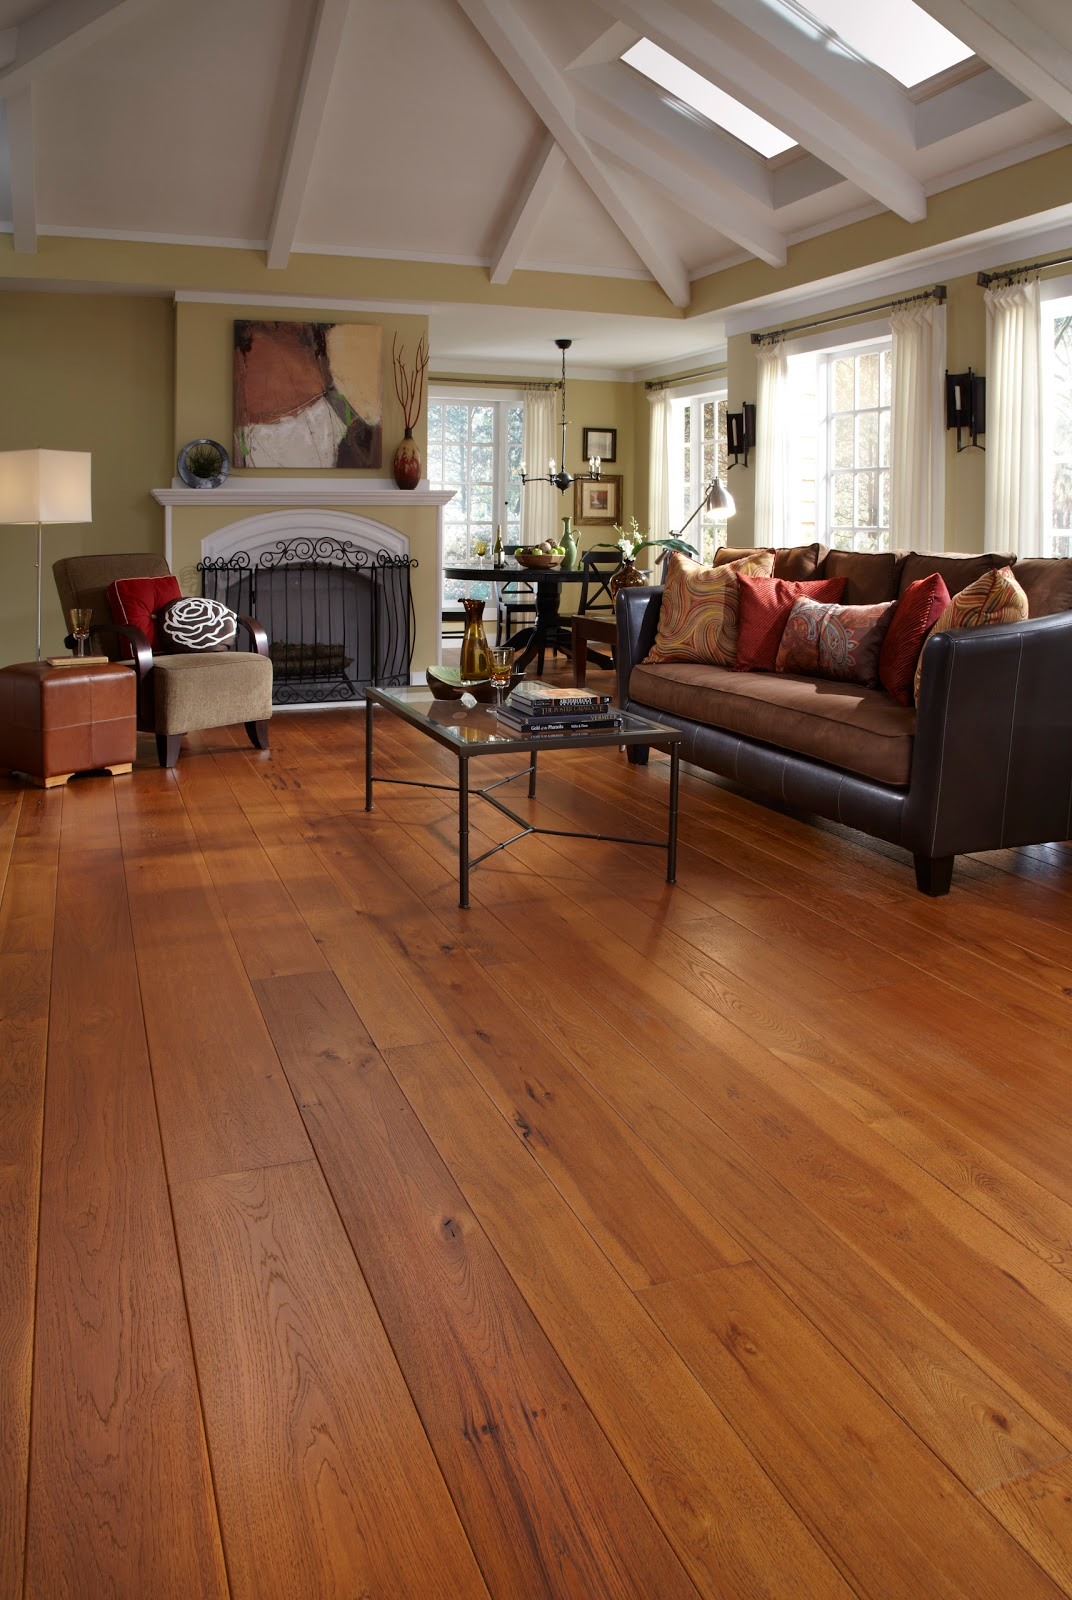 Wide Plank Flooring : Wide plank hardwood flooring ideas home